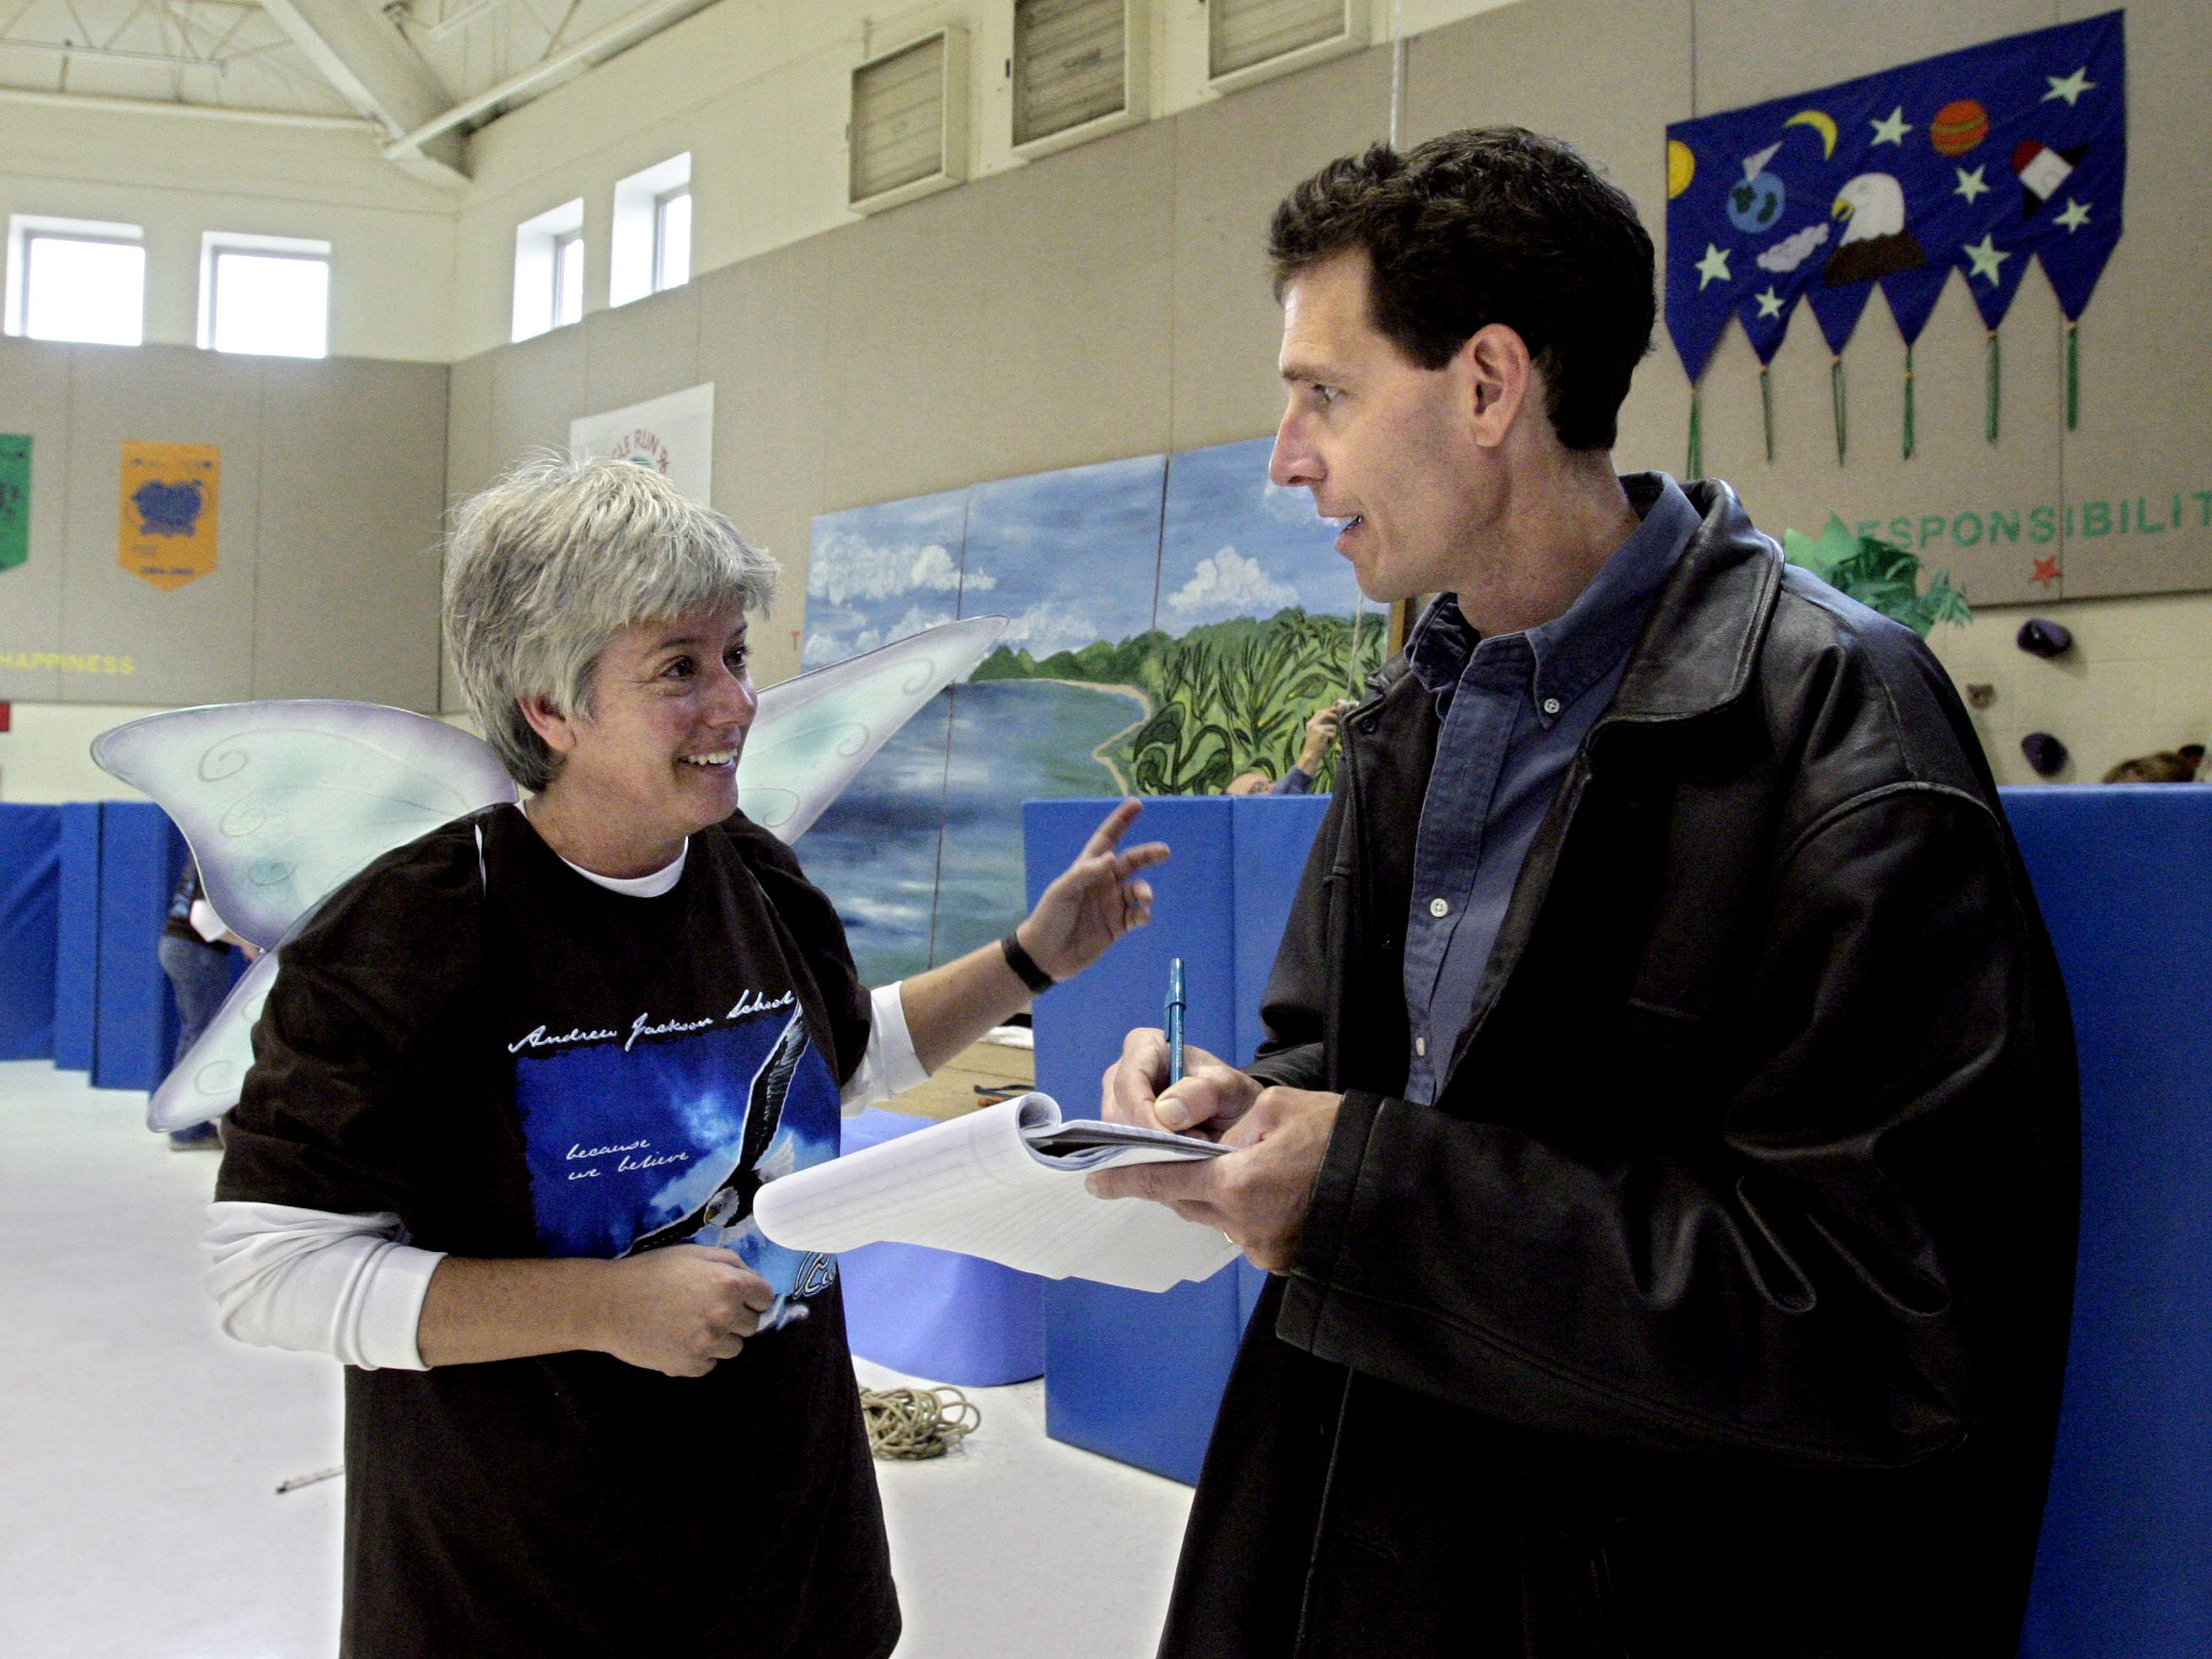 Susan Floyd, left, organizer of the annual Eagle Run at Andrew Jackson Elementary School in Old Hickory, Tenn., talks with Tennessean reporter Andy Humbles for a story Oct. 20, 2006.